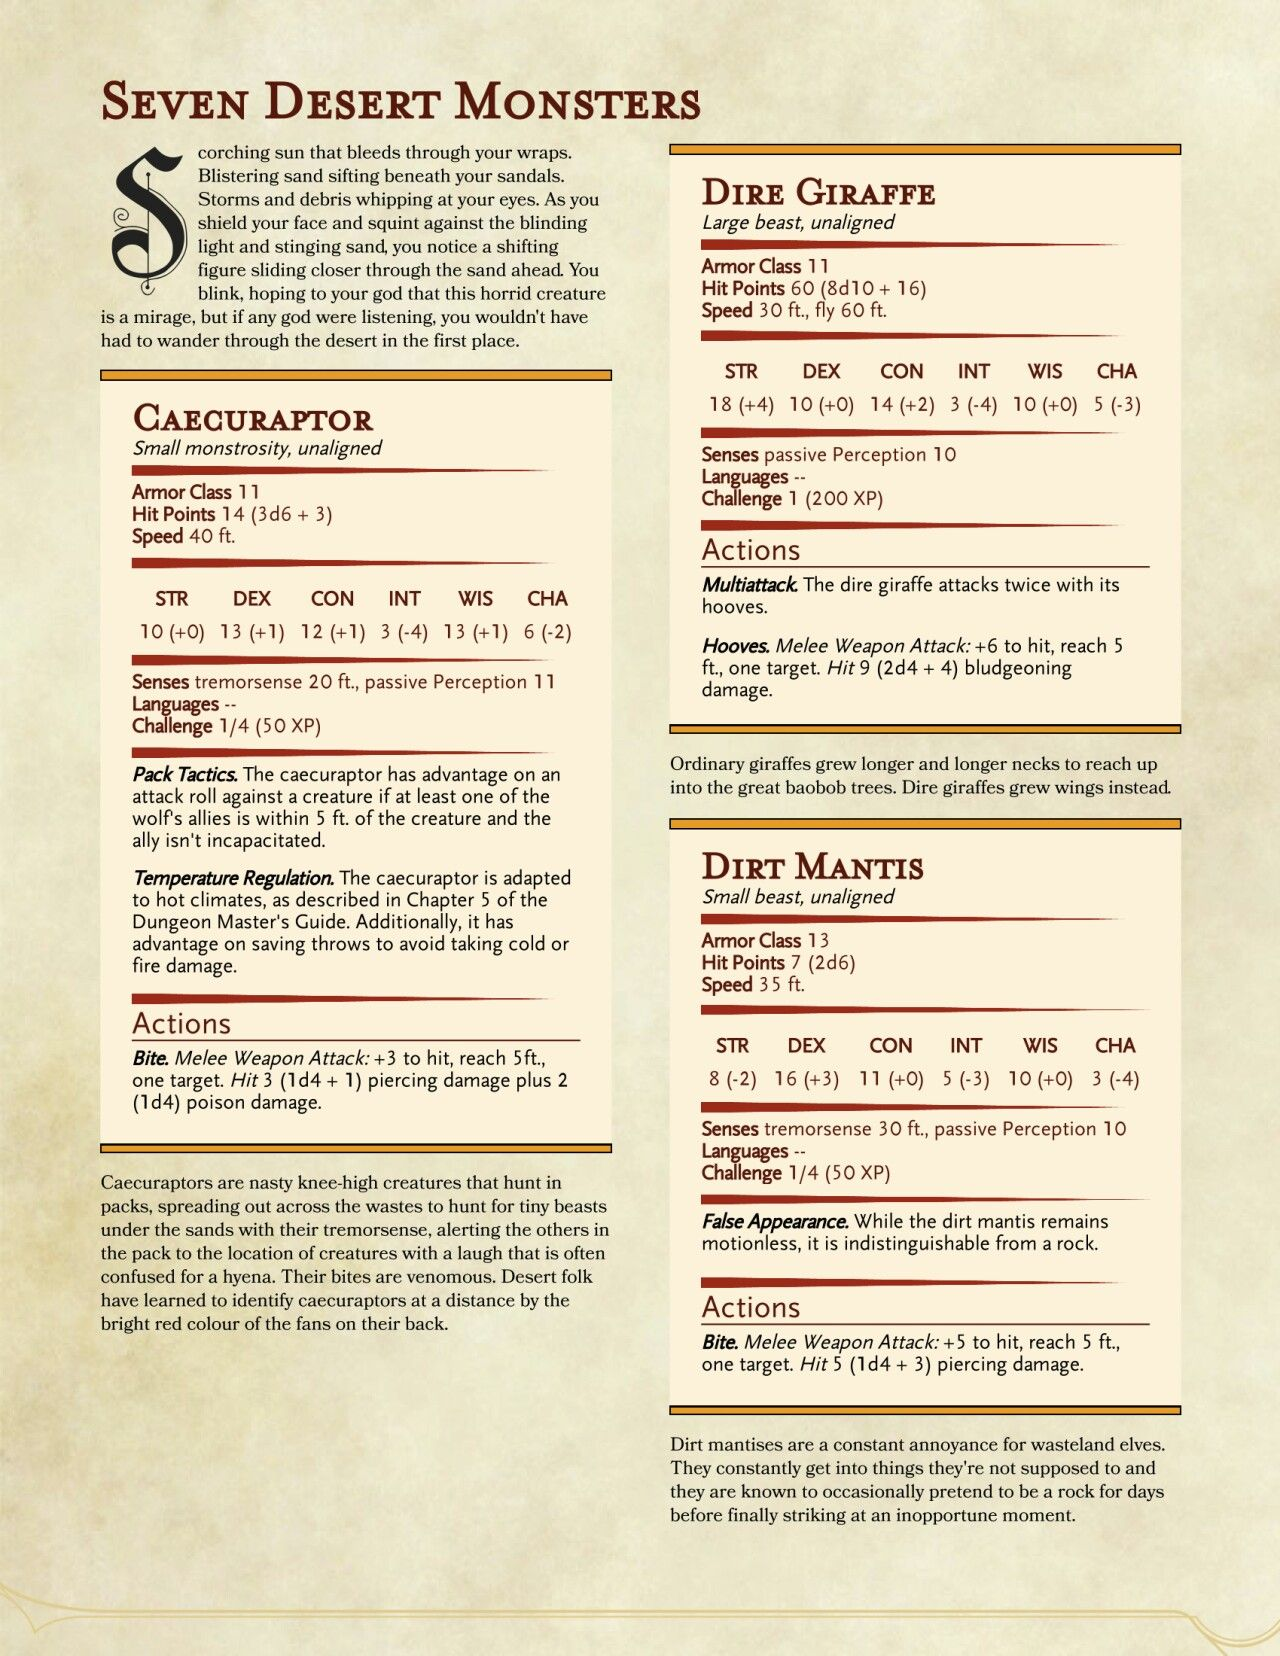 Pin by alek dombrowsky on D&D Sheets | Dnd 5e homebrew, Dungeons